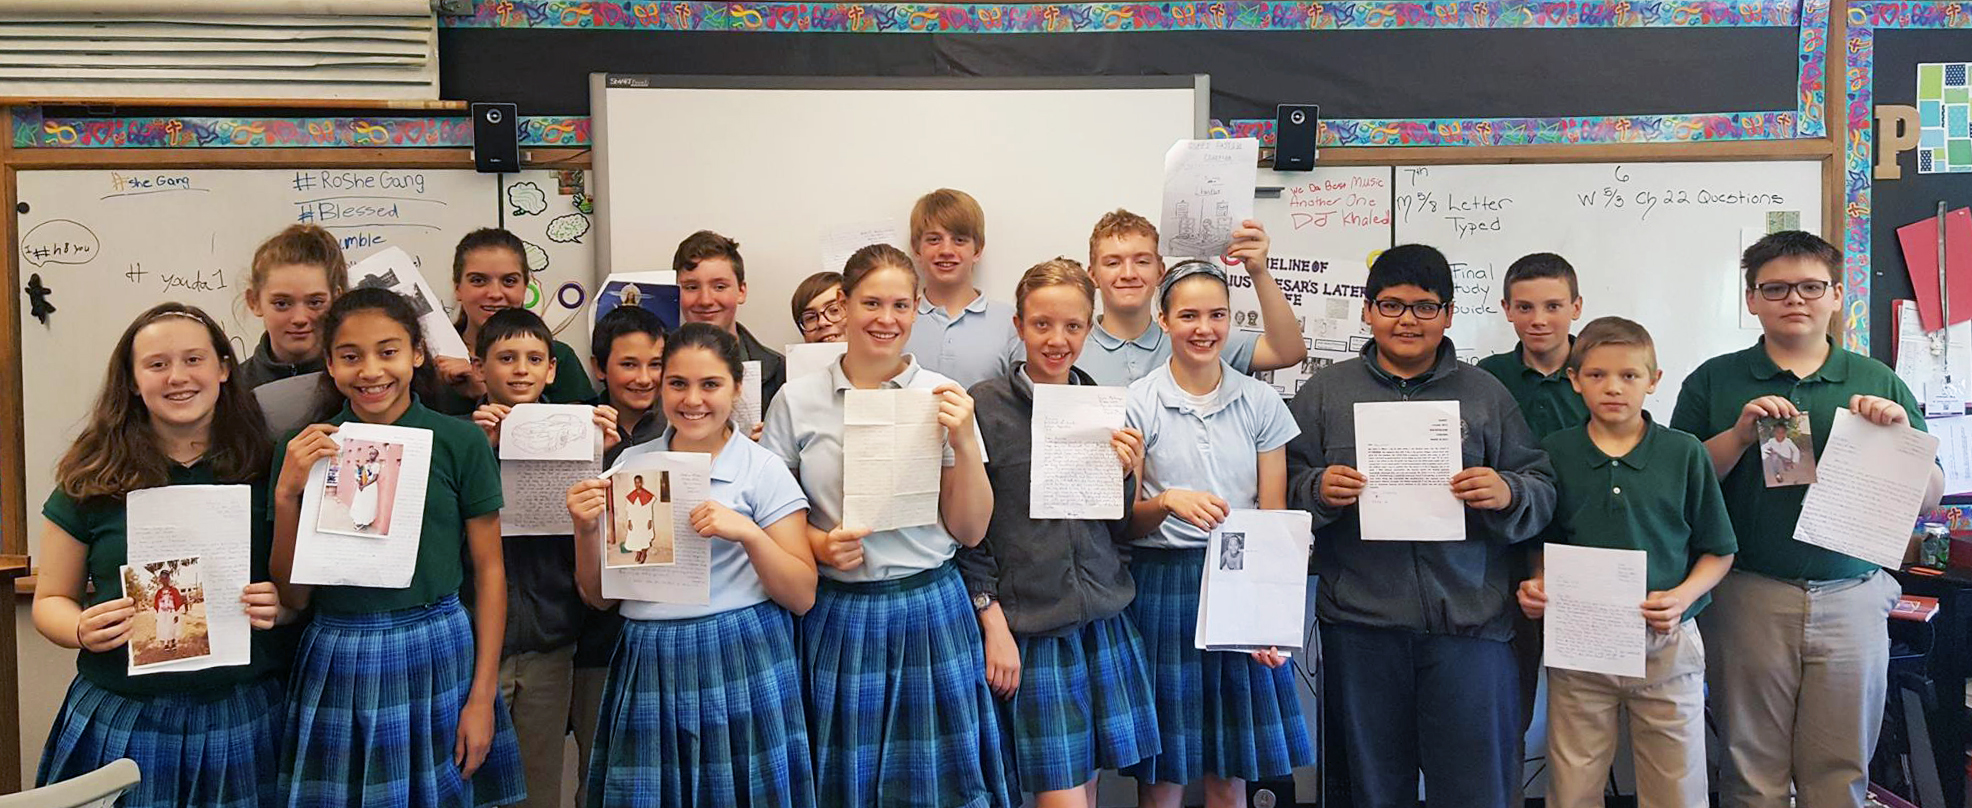 A class of students proudly display their pen pal letters.